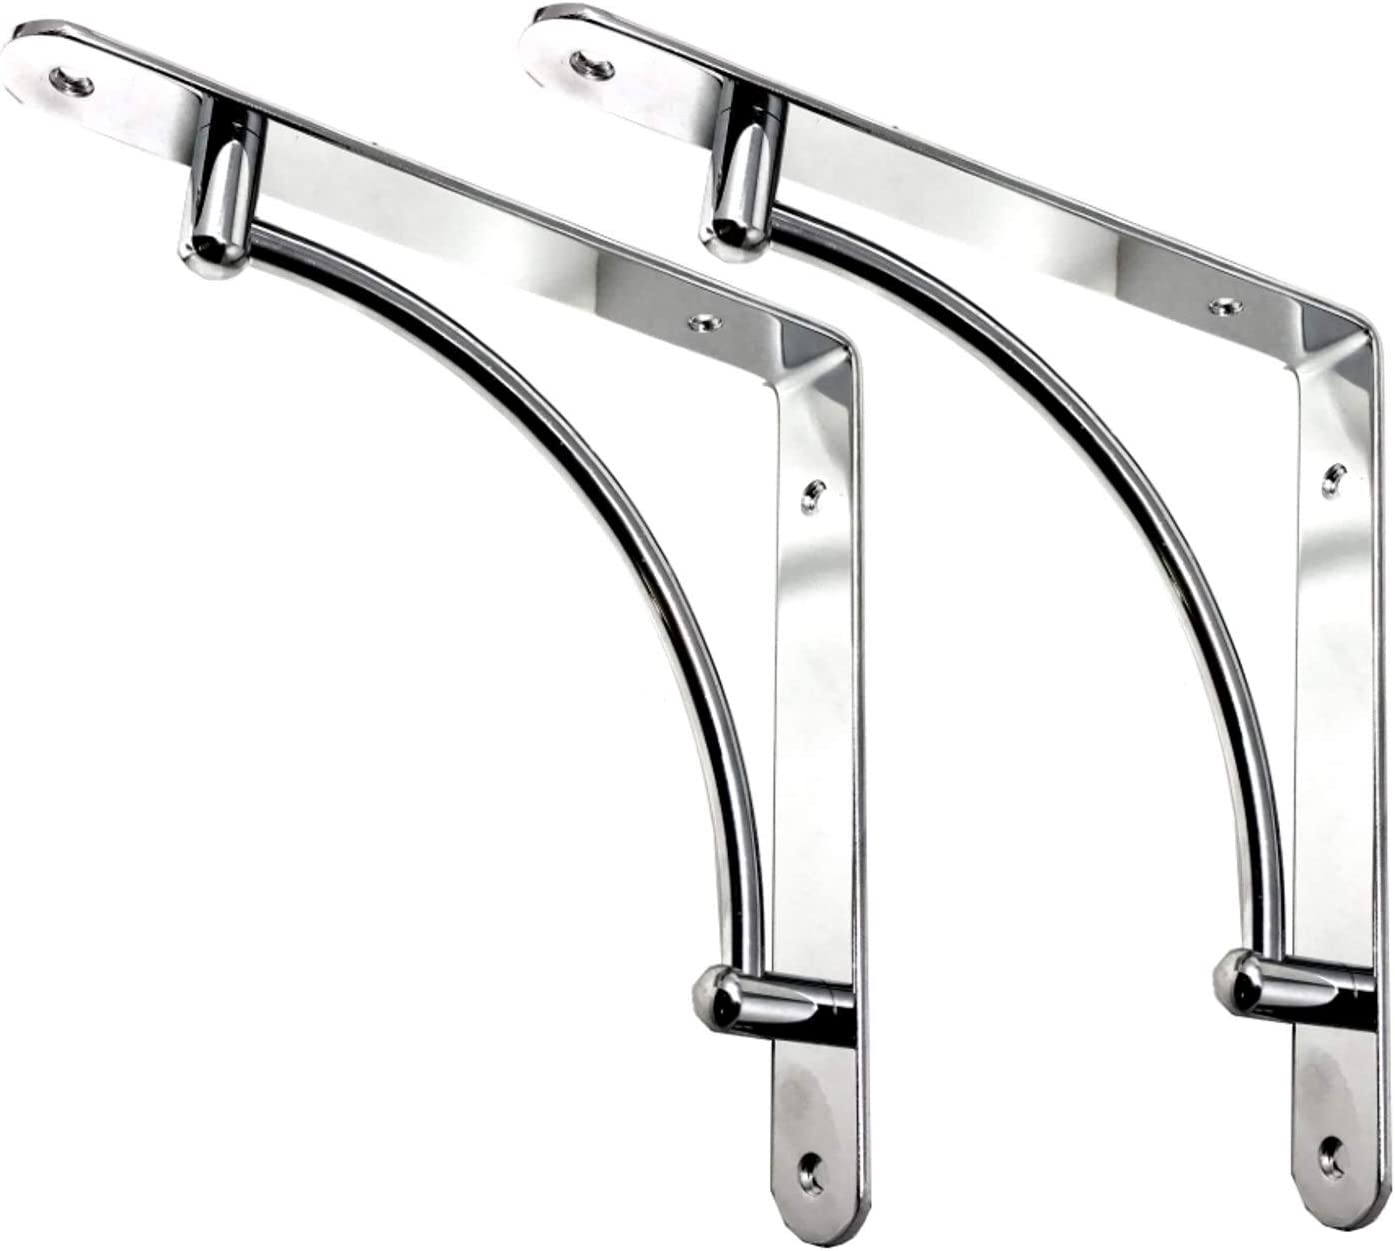 Bright Chrome Small Shelf Brackets Perfect for Shelves and Cisterns. Sinks